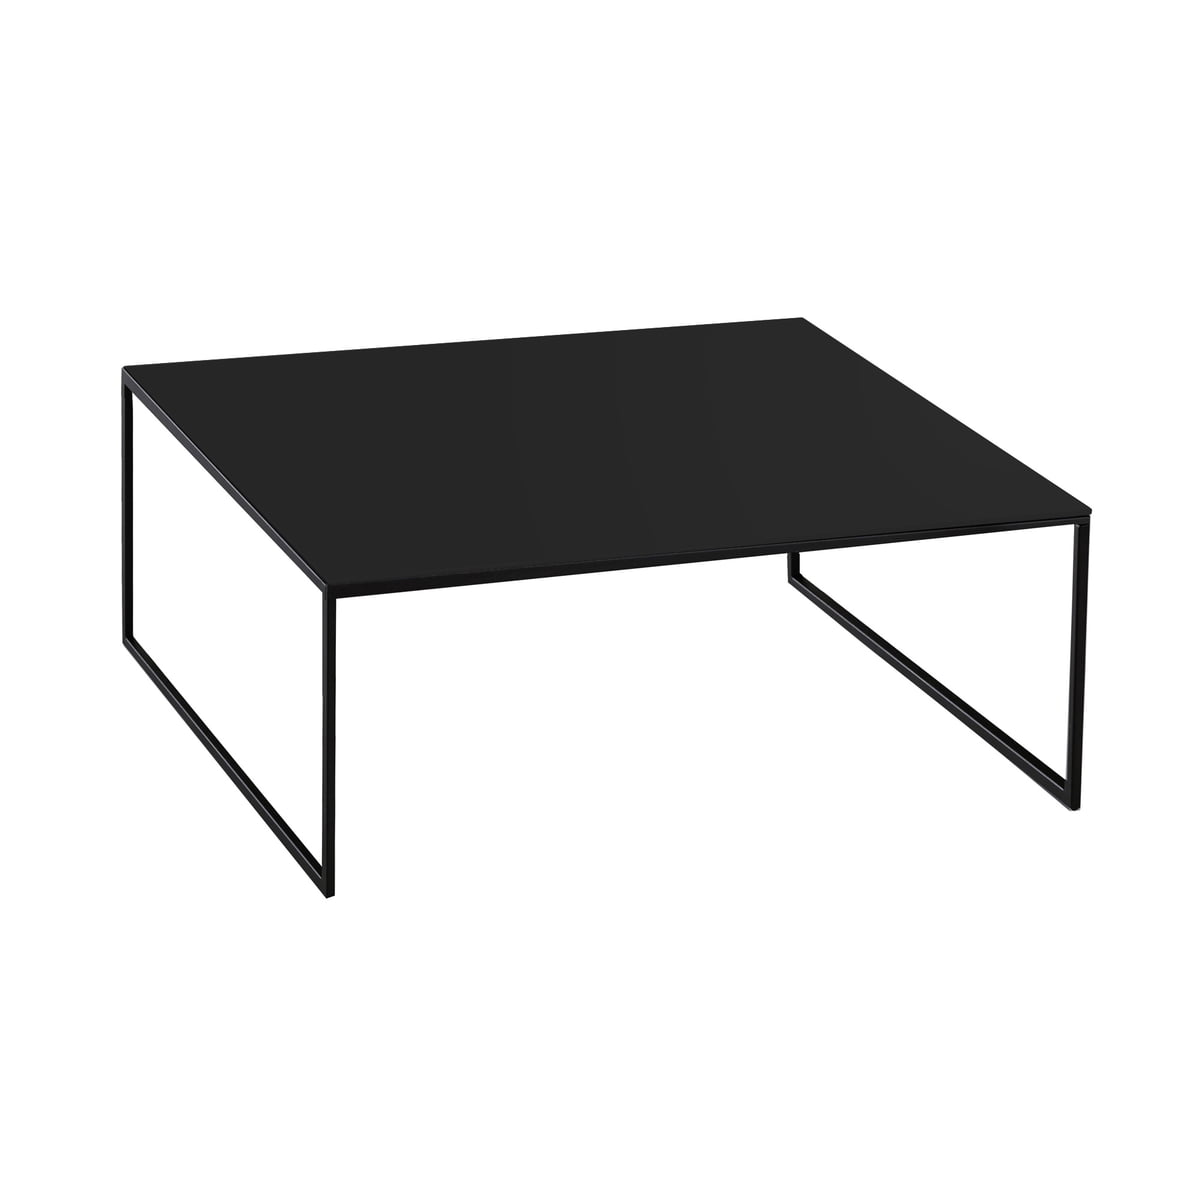 Less h 15 2 coffee table by hans hansen for Small black coffee table